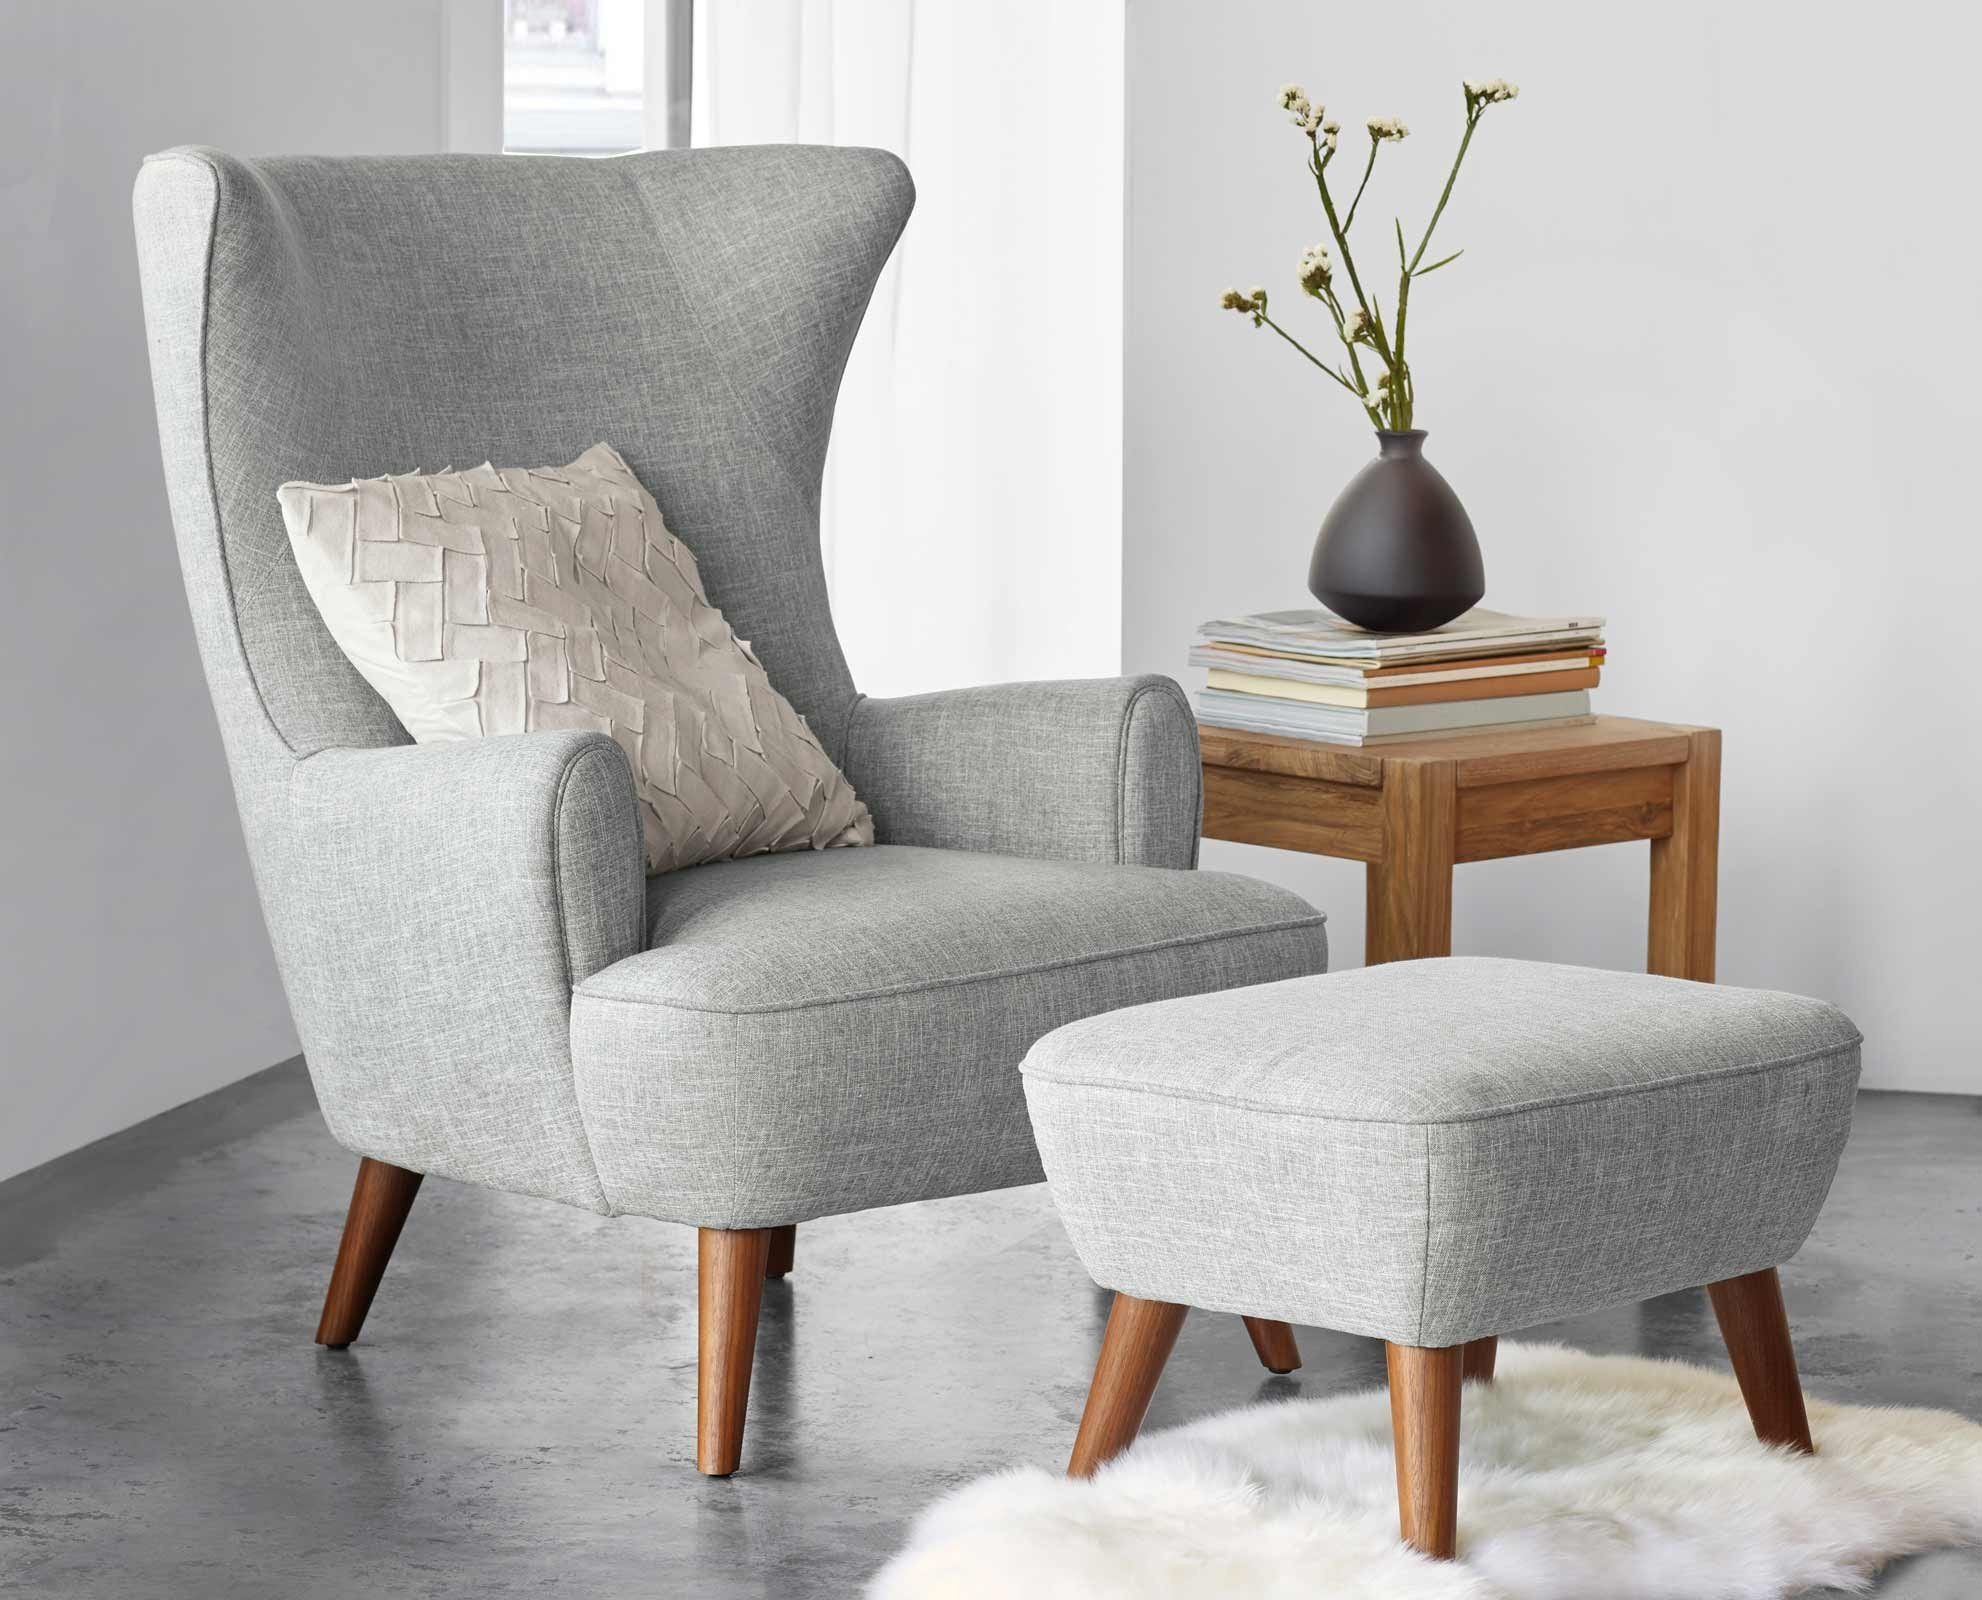 High Backed Chair Ashley Chairs Sale Katja Back Grey Living Room Furniture From Dania With An Overall Classic Profile The Lines Of Add Visual Interest To Your Space